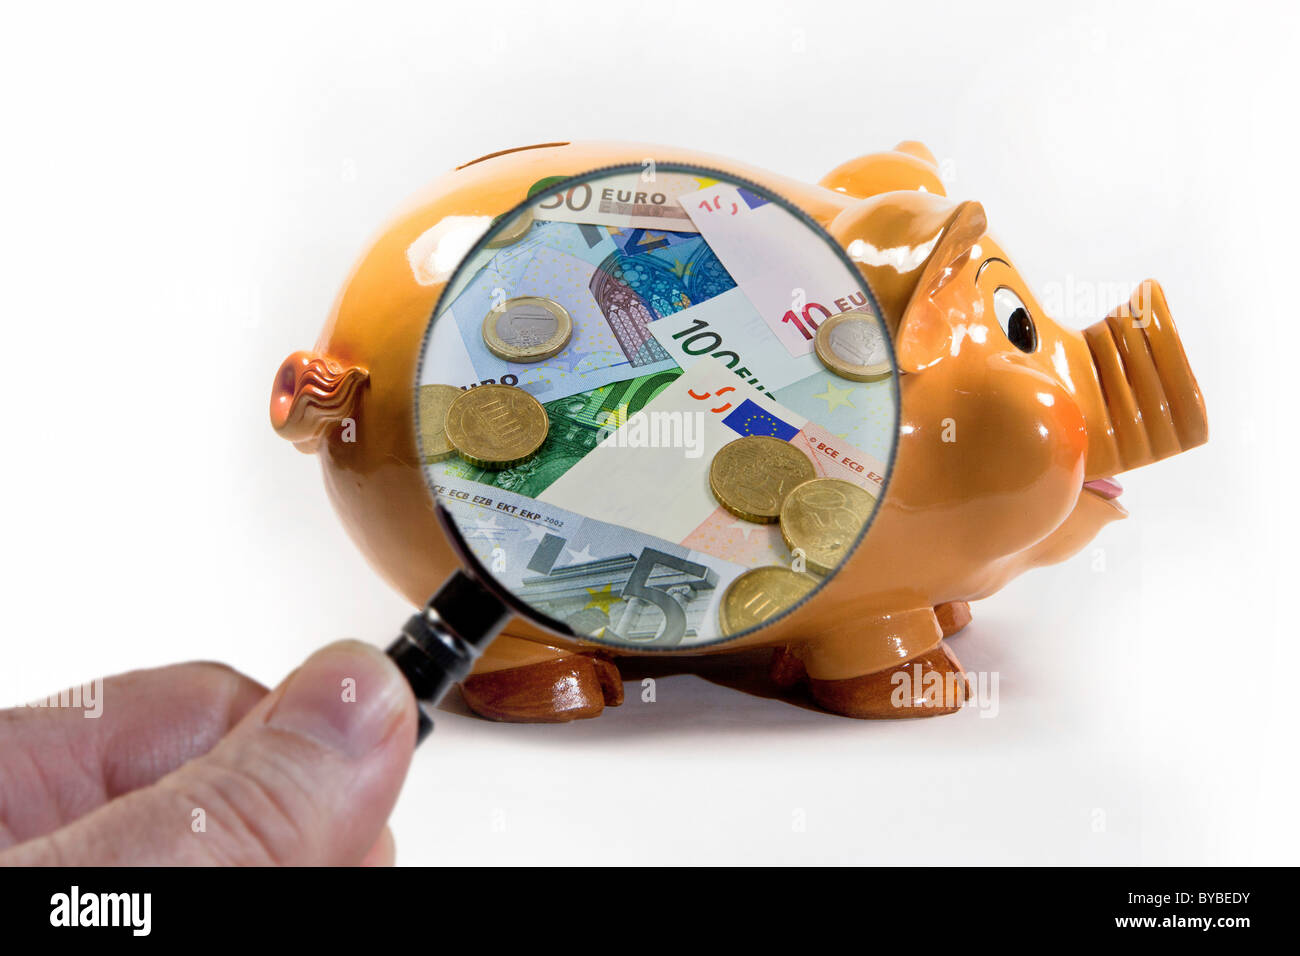 Symbolic image for saving money - Stock Image